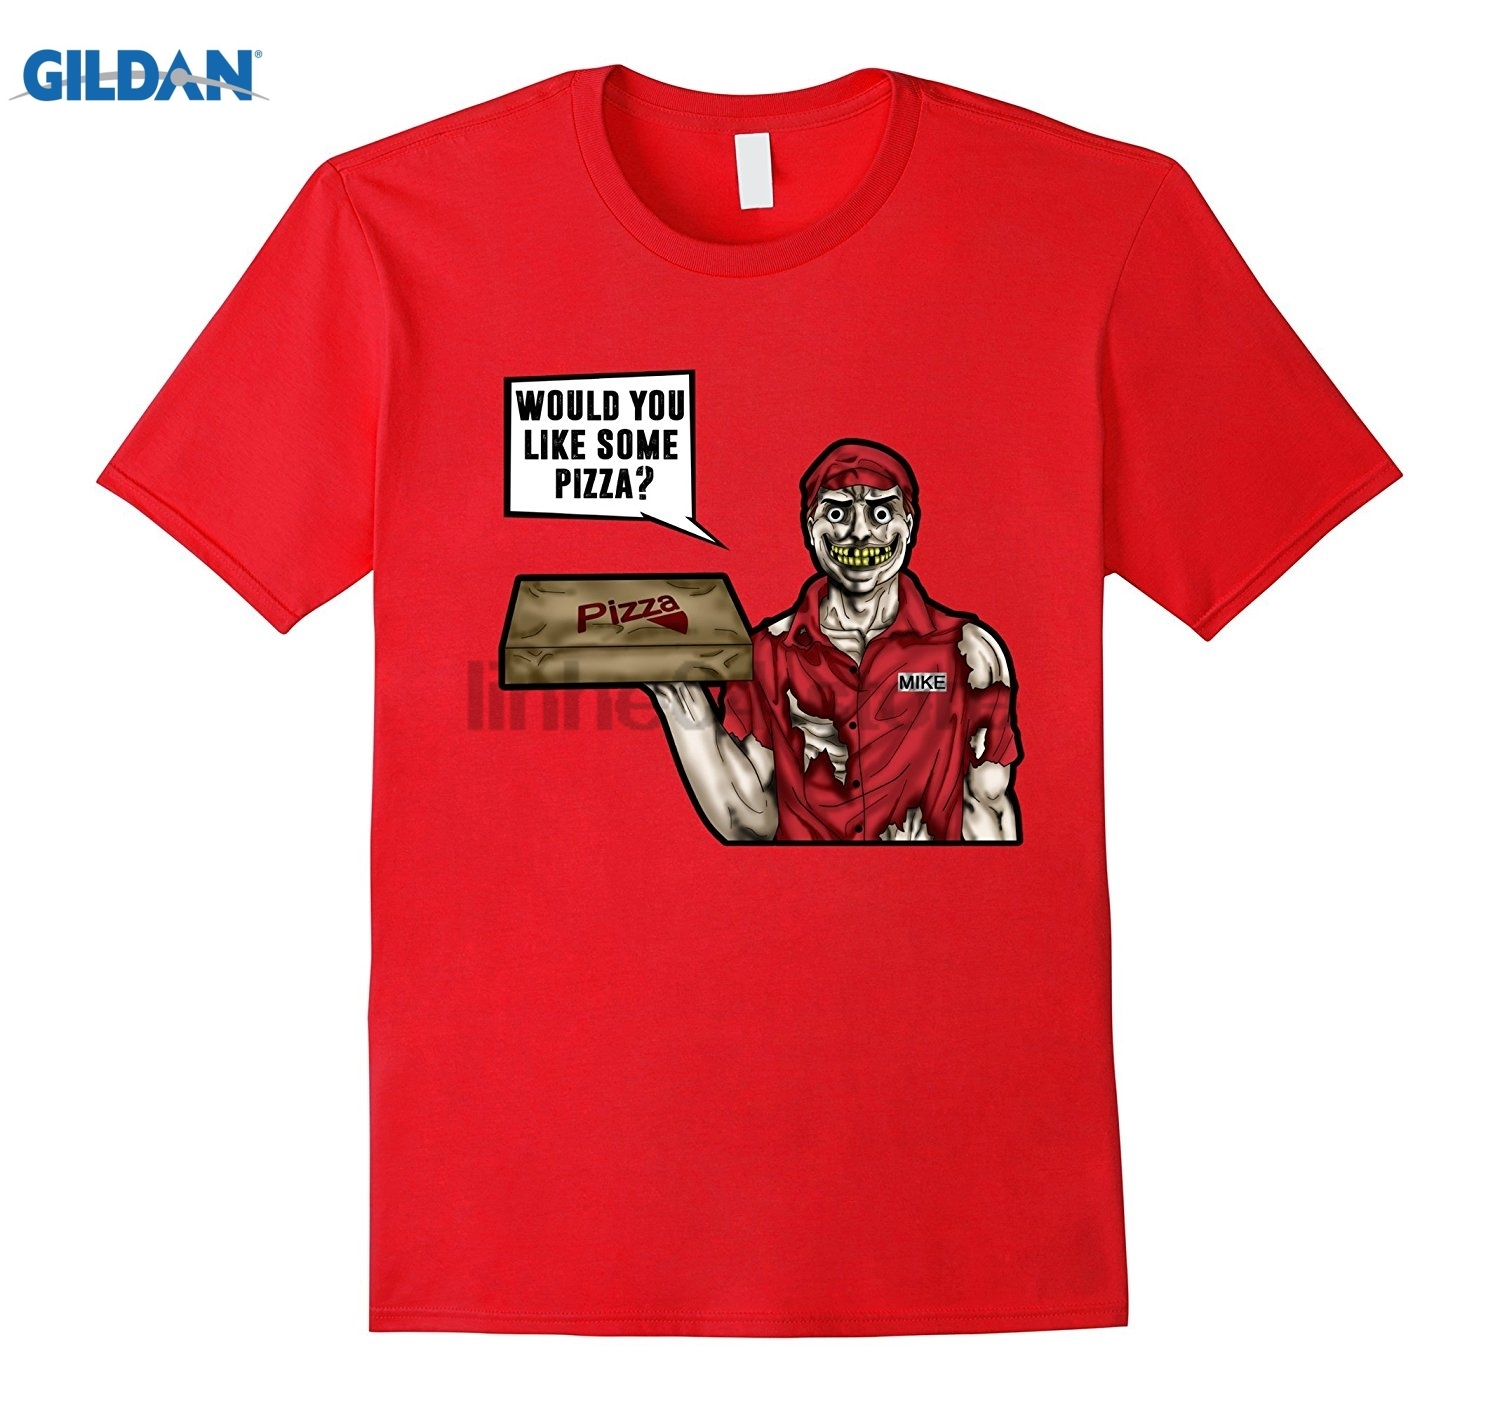 GILDAN Scary Pizza Delivery Man Horror T-Shirt Mothers Day Ms. T-shirt ...